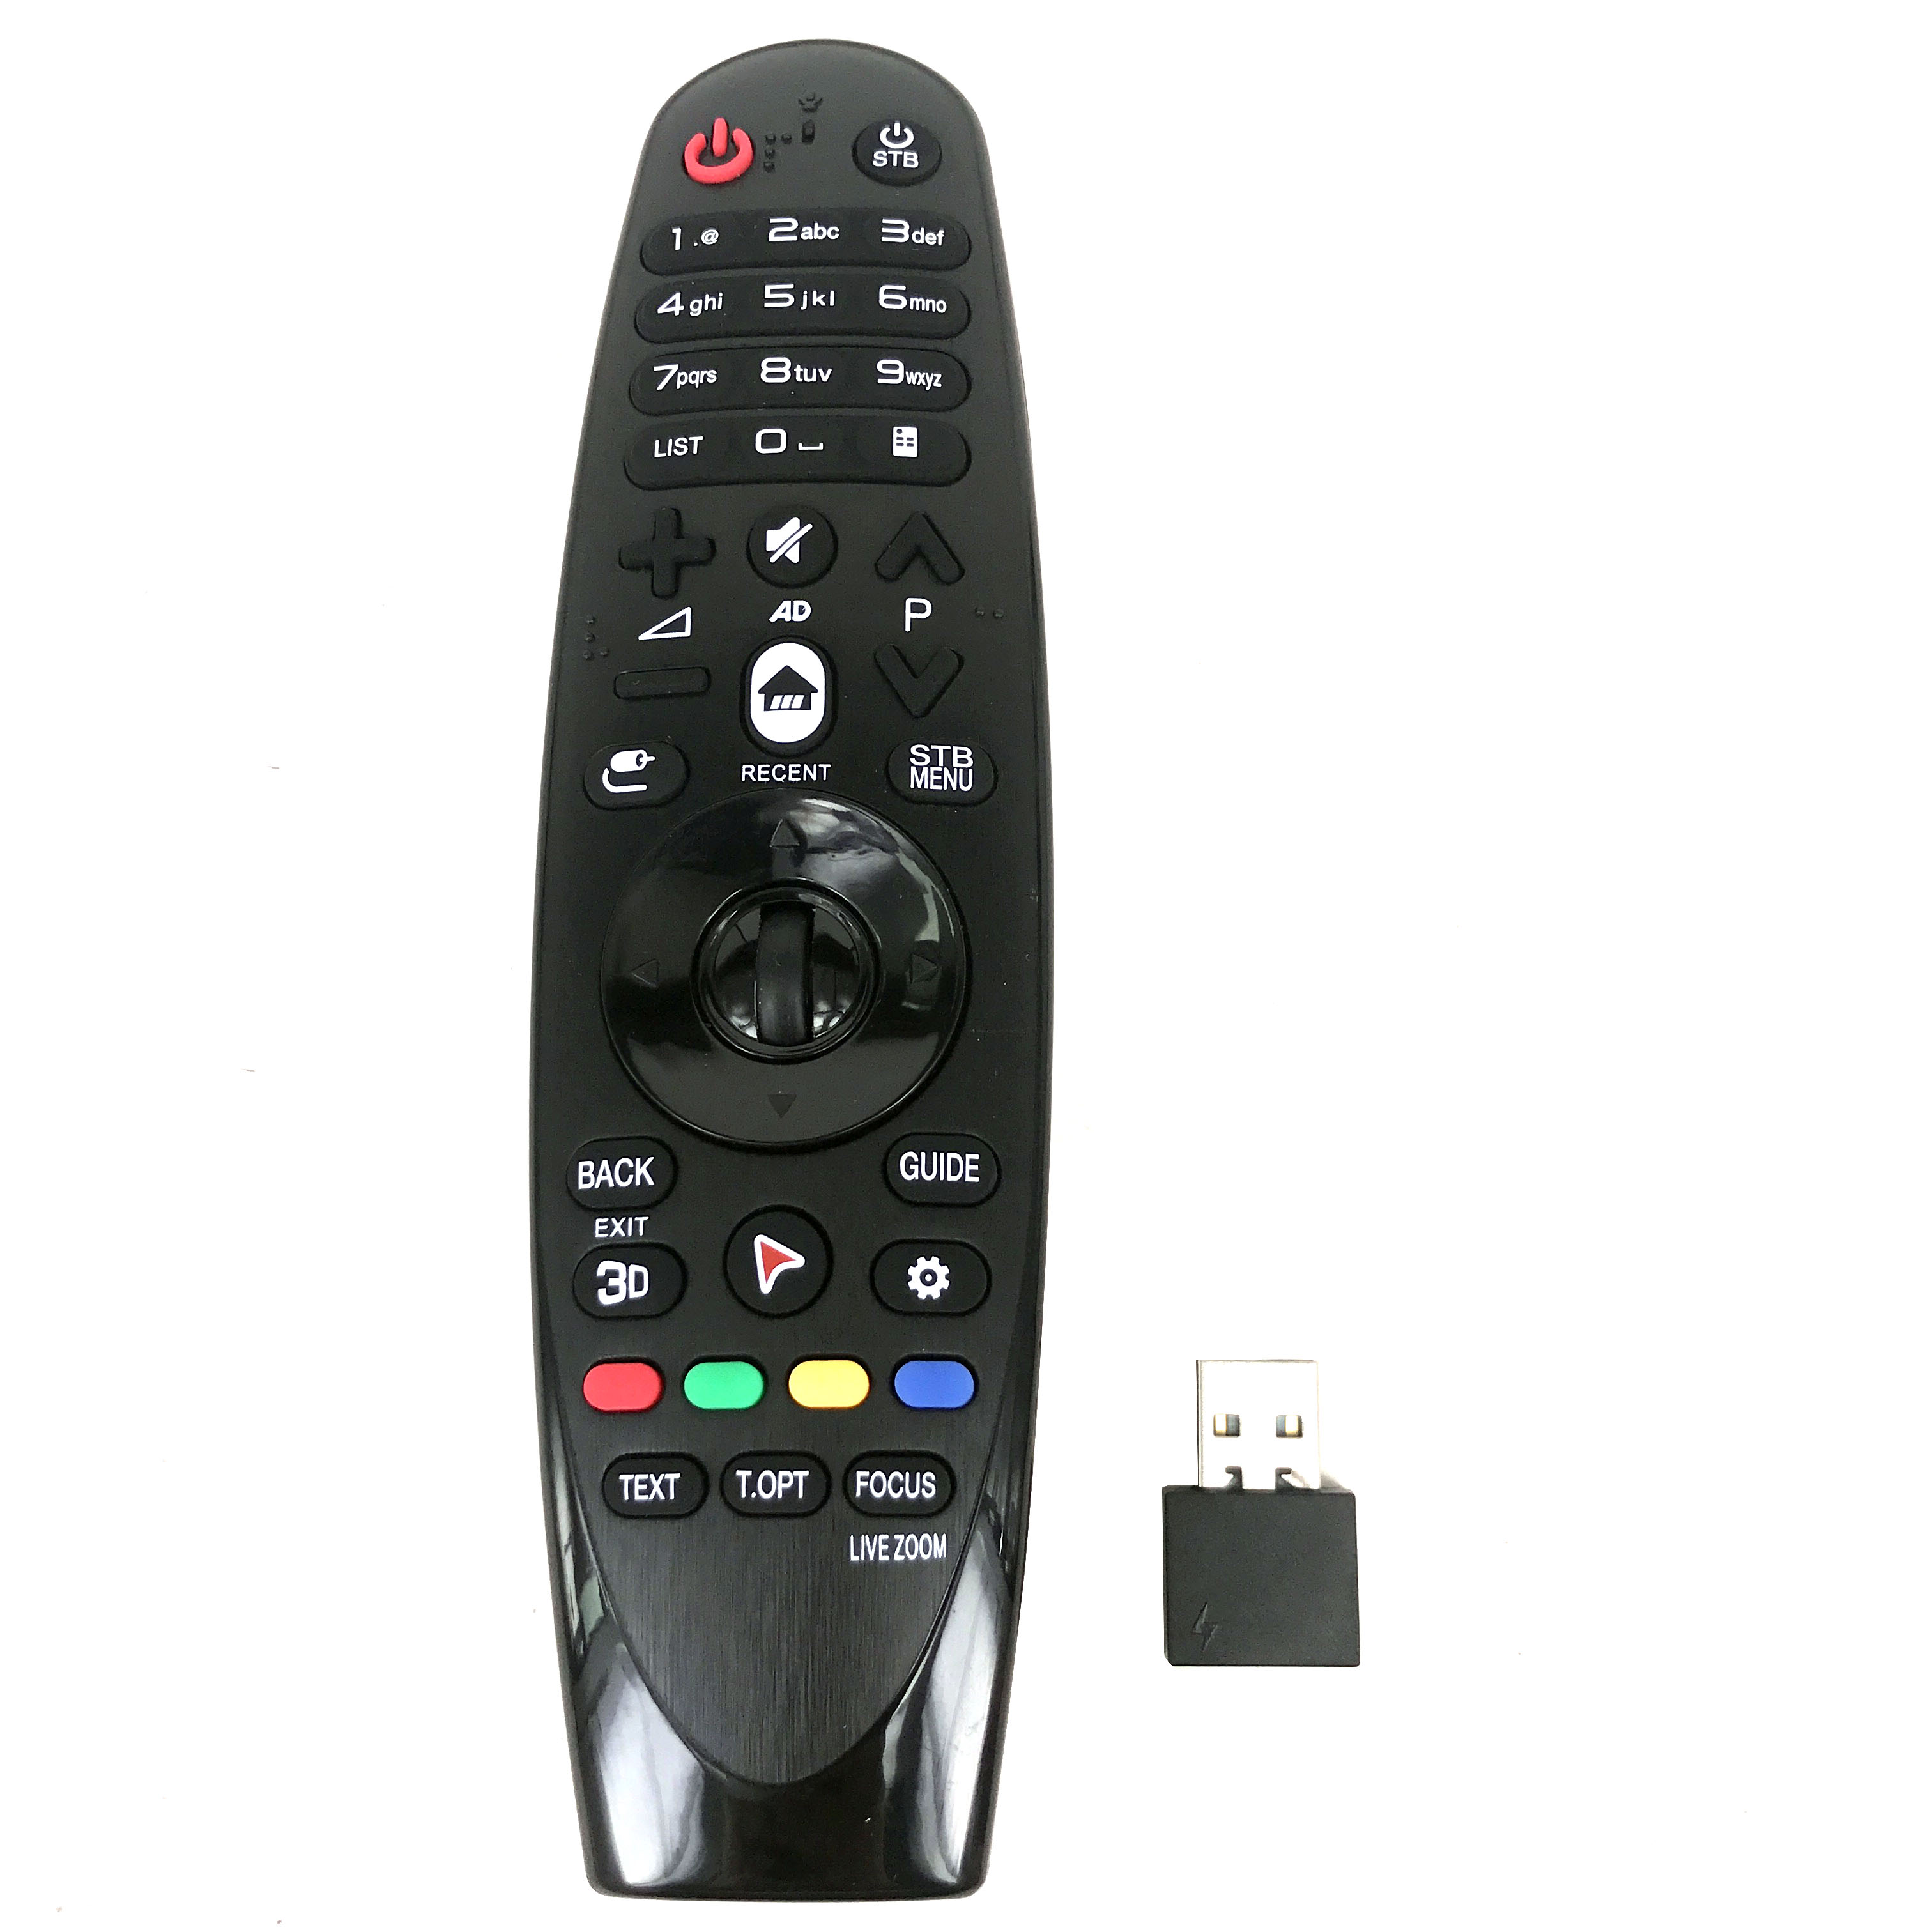 NEW remote control AM HR650 AN MR650 Rplacement For LG Magic Select 2016 Smart television UH9500 UH8500 UH7700 Fernbedienung|Remote Controls| |  - title=